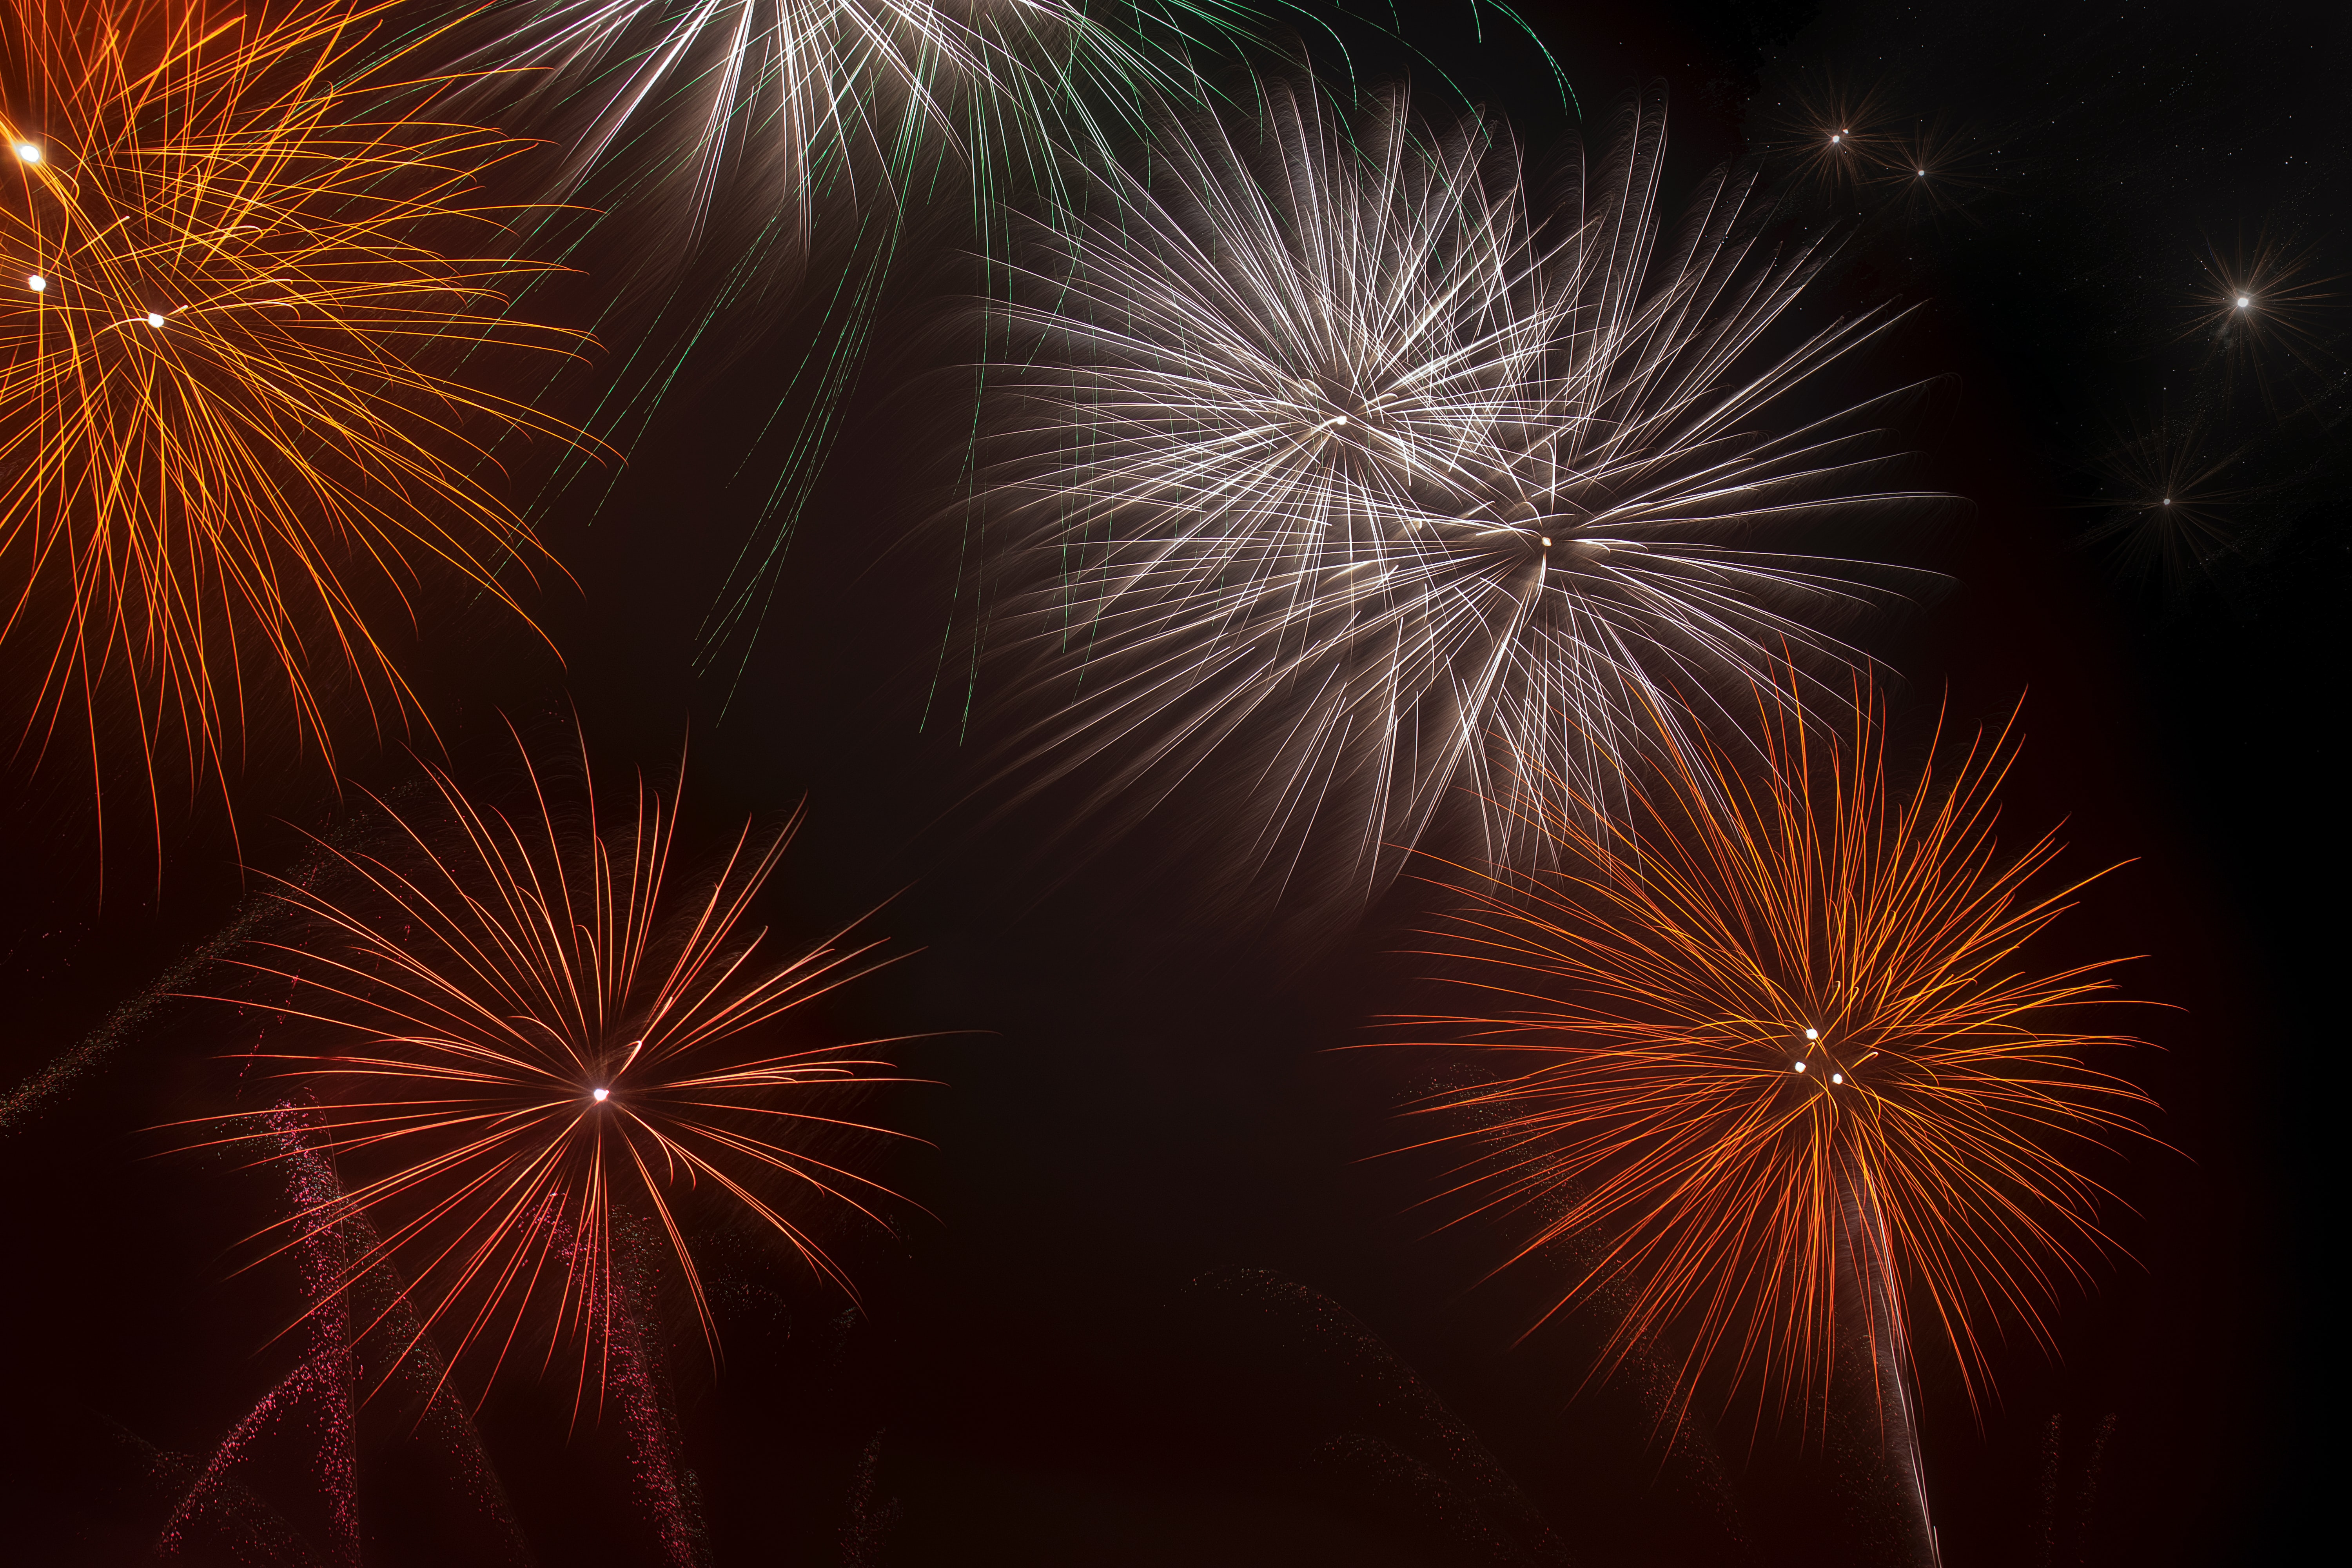 54833 Screensavers and Wallpapers Sparks for phone. Download Holidays, Sky, Night, Sparks, Holiday, Fireworks, Firework pictures for free